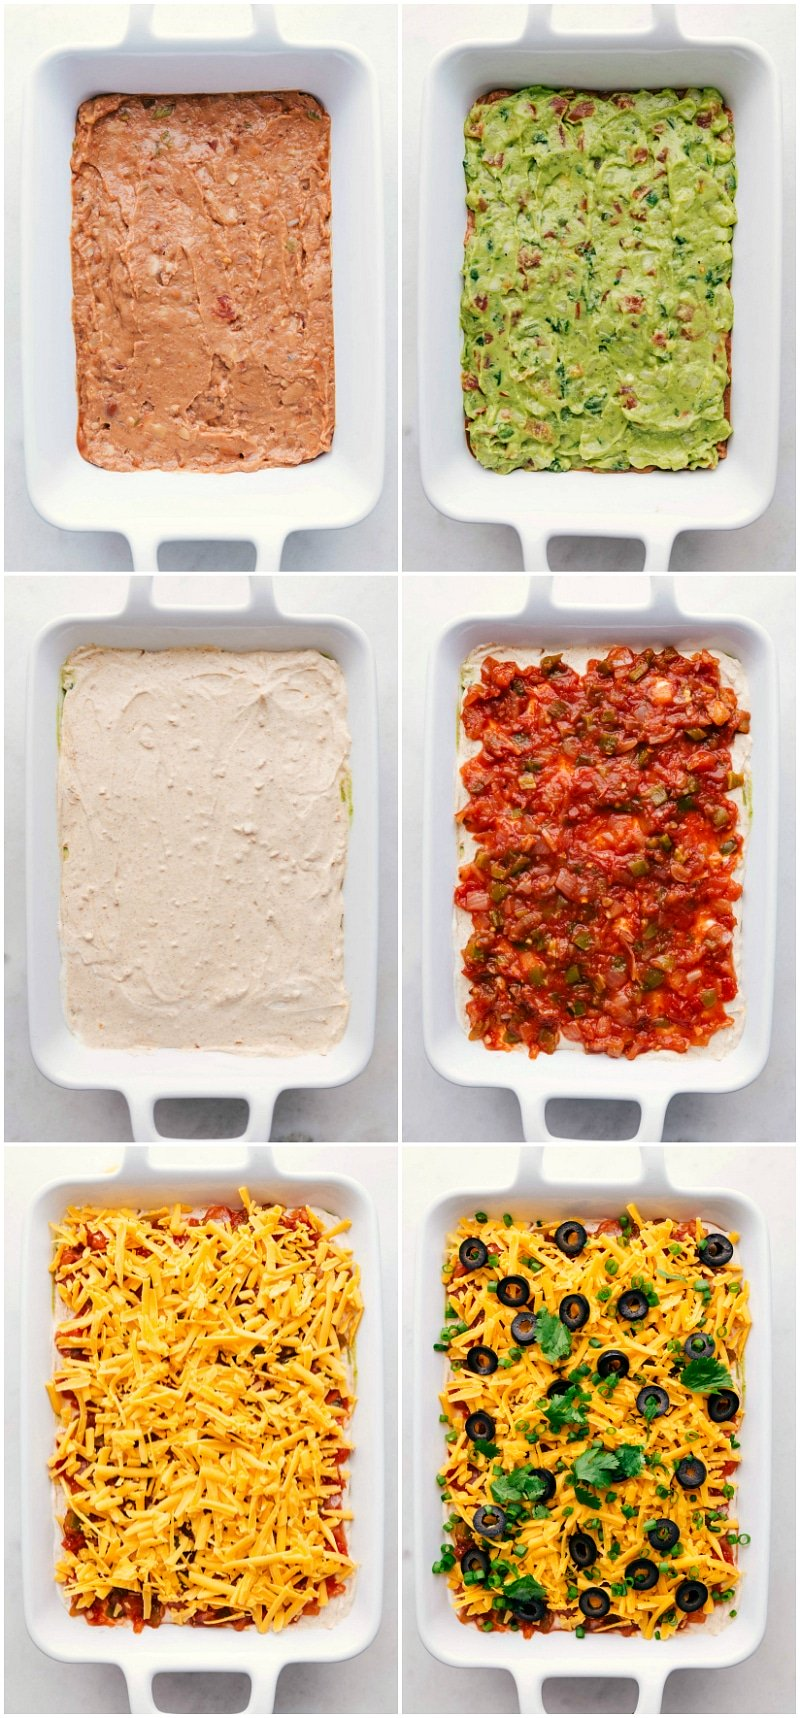 Overhead image of the refried beans, guacamole, sour cream with taco seasoning, salsa, cheese, olives, and green onion layers for this 7 layer dip recipe.